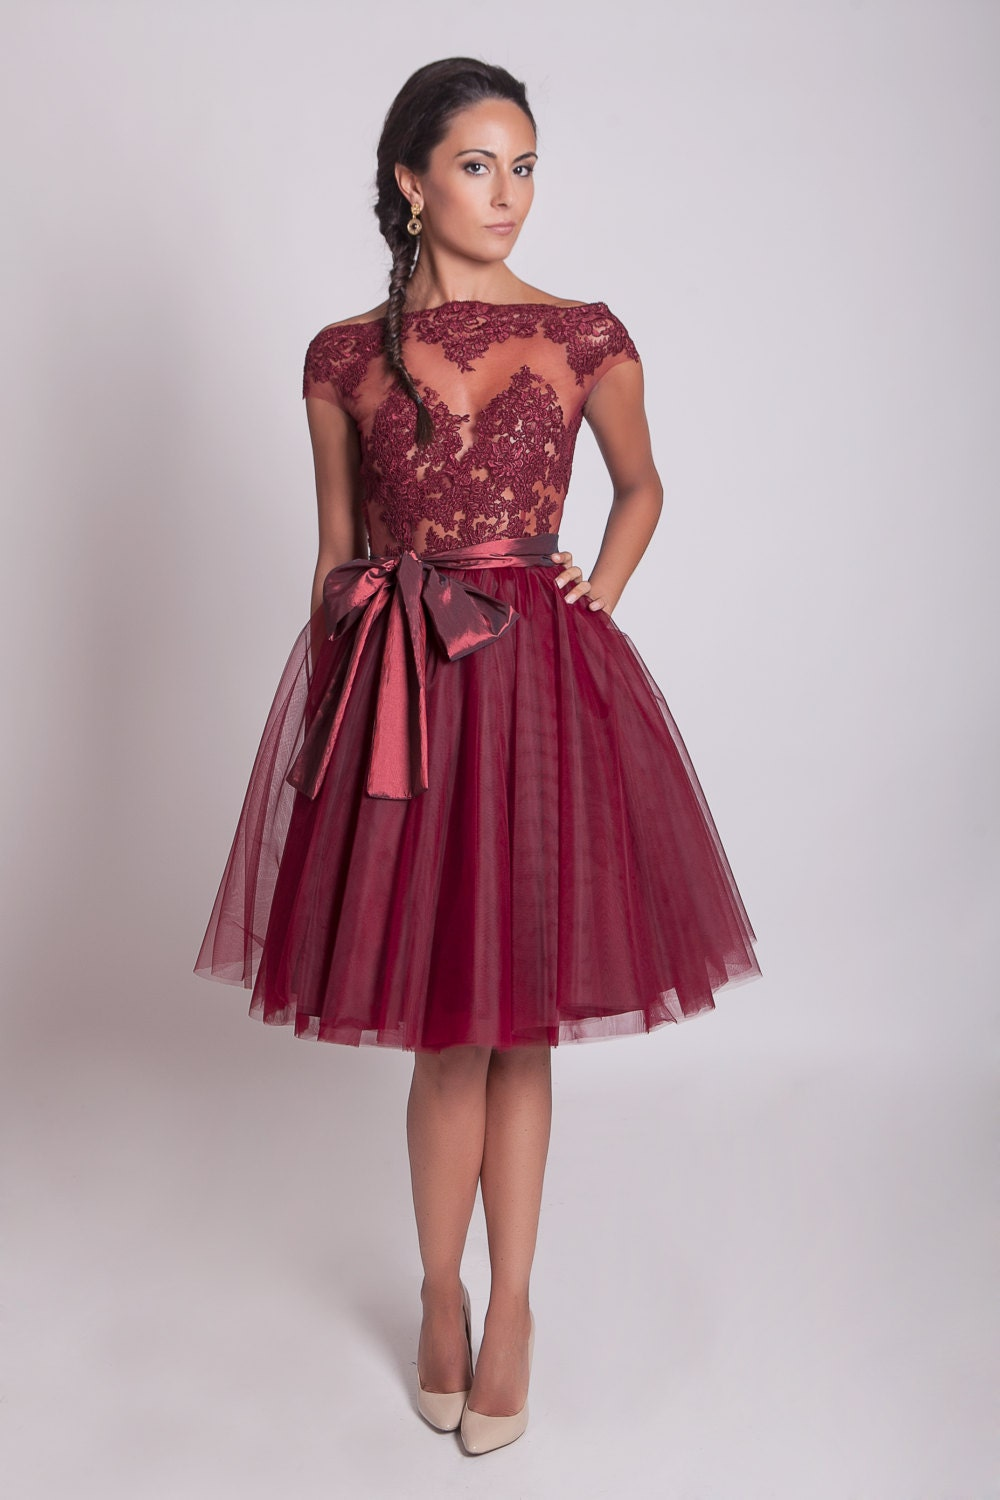 50s style lace prom dress burgundy lace dress tulle zoom ombrellifo Choice Image